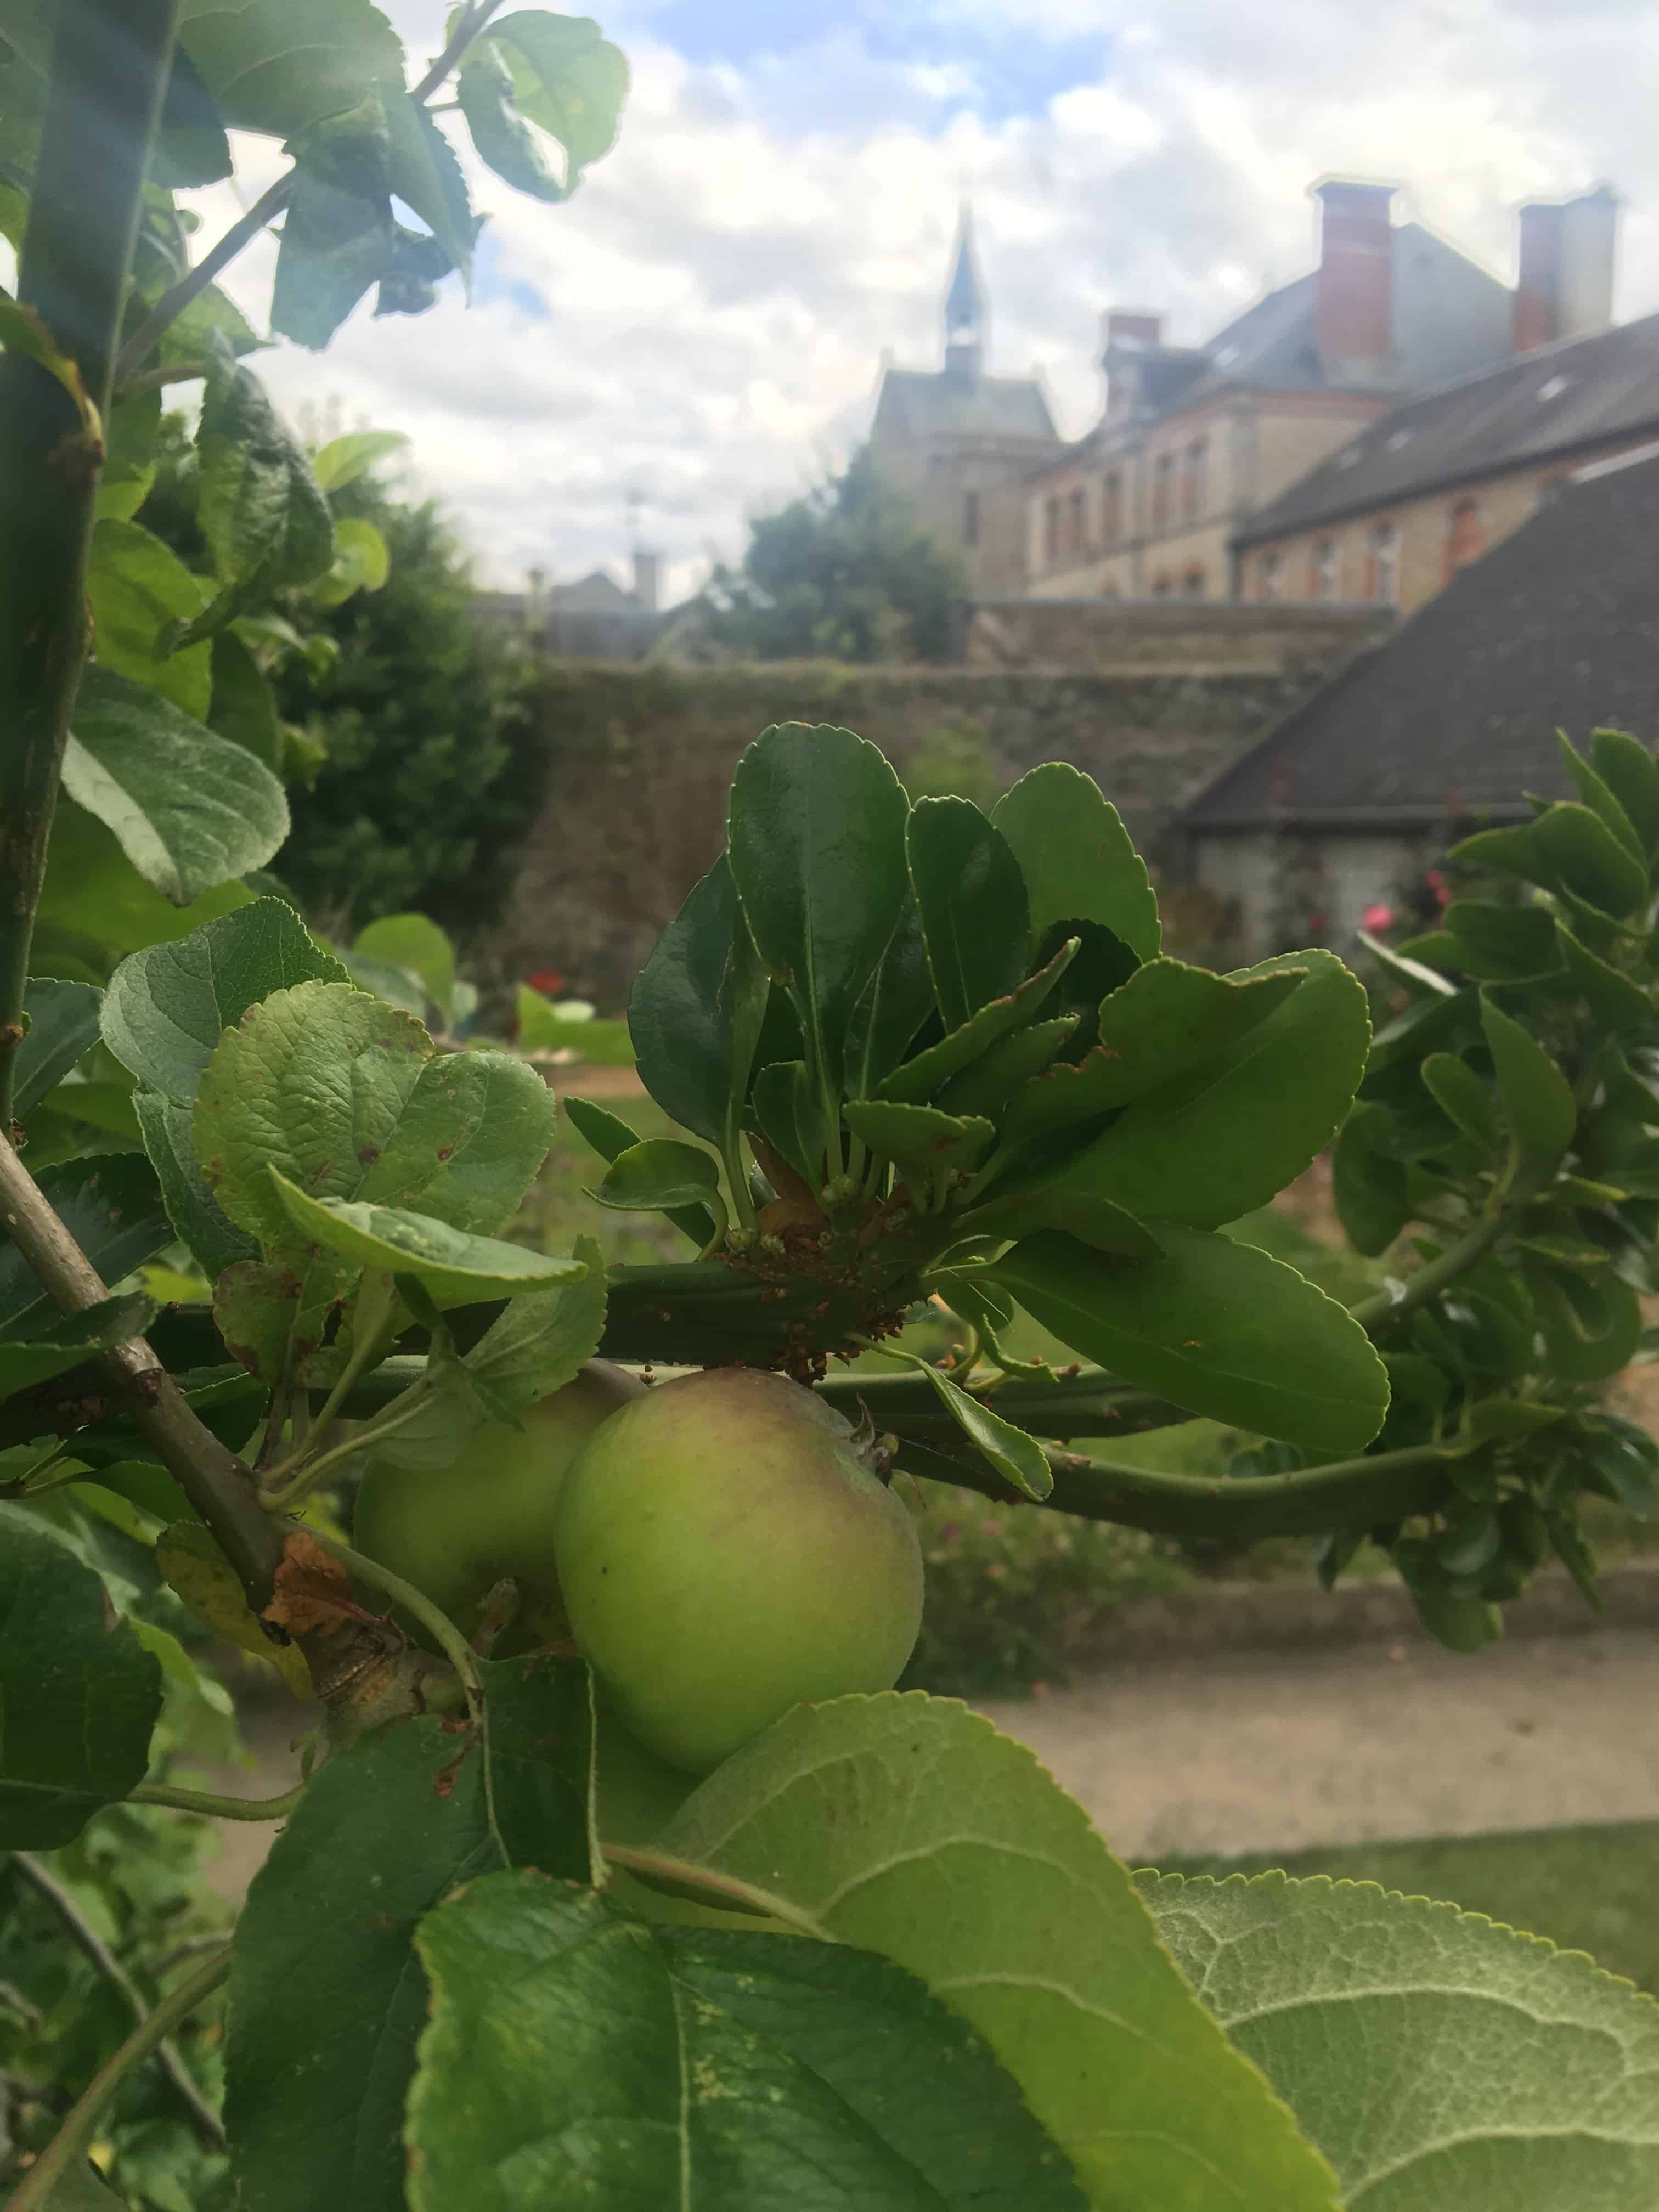 Normandy apple tree